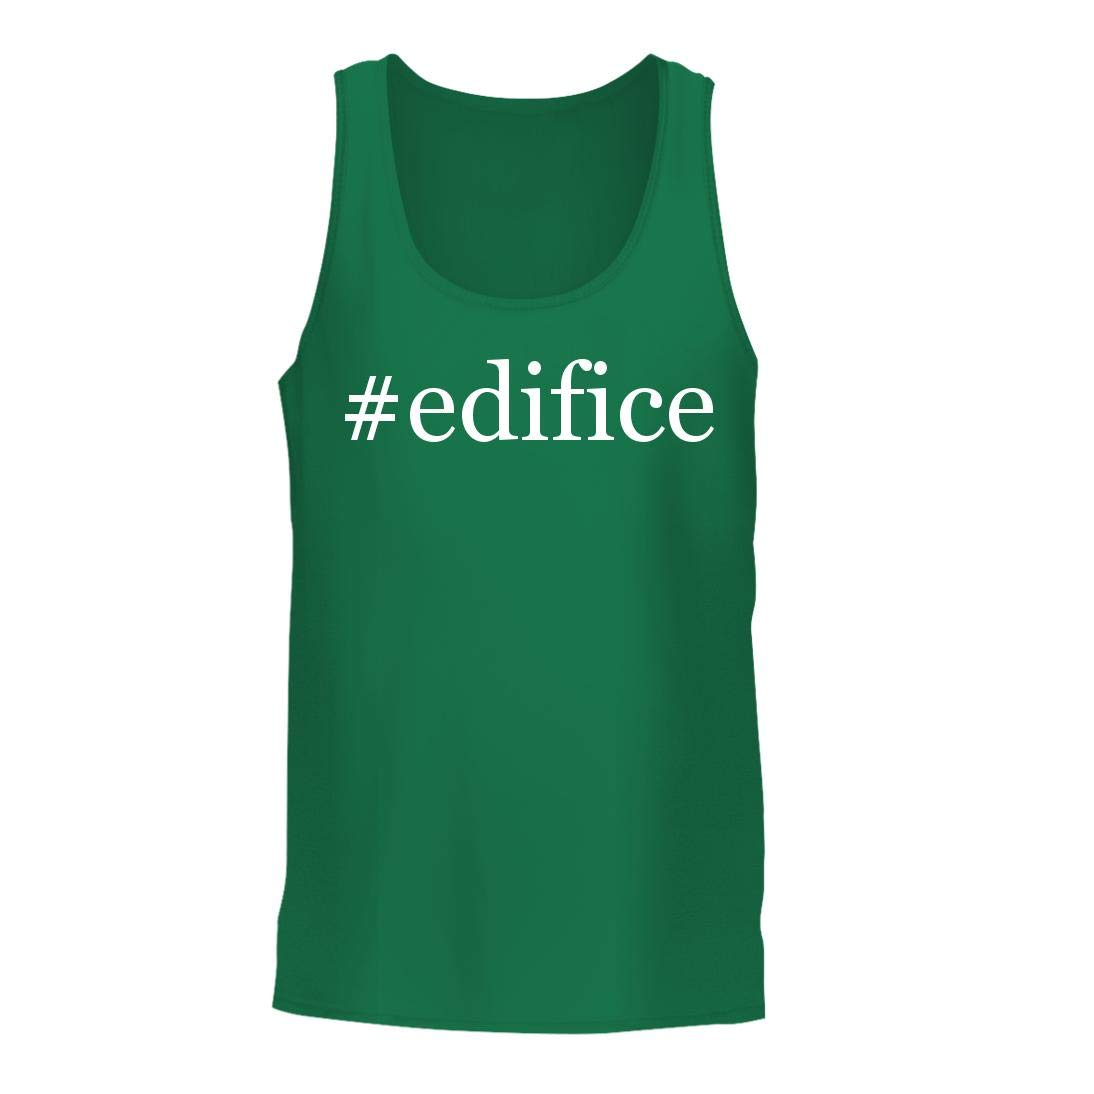 #Edifice - A Nice Hashtag Men's Tank Top, Green, Large by Shirt Me Up